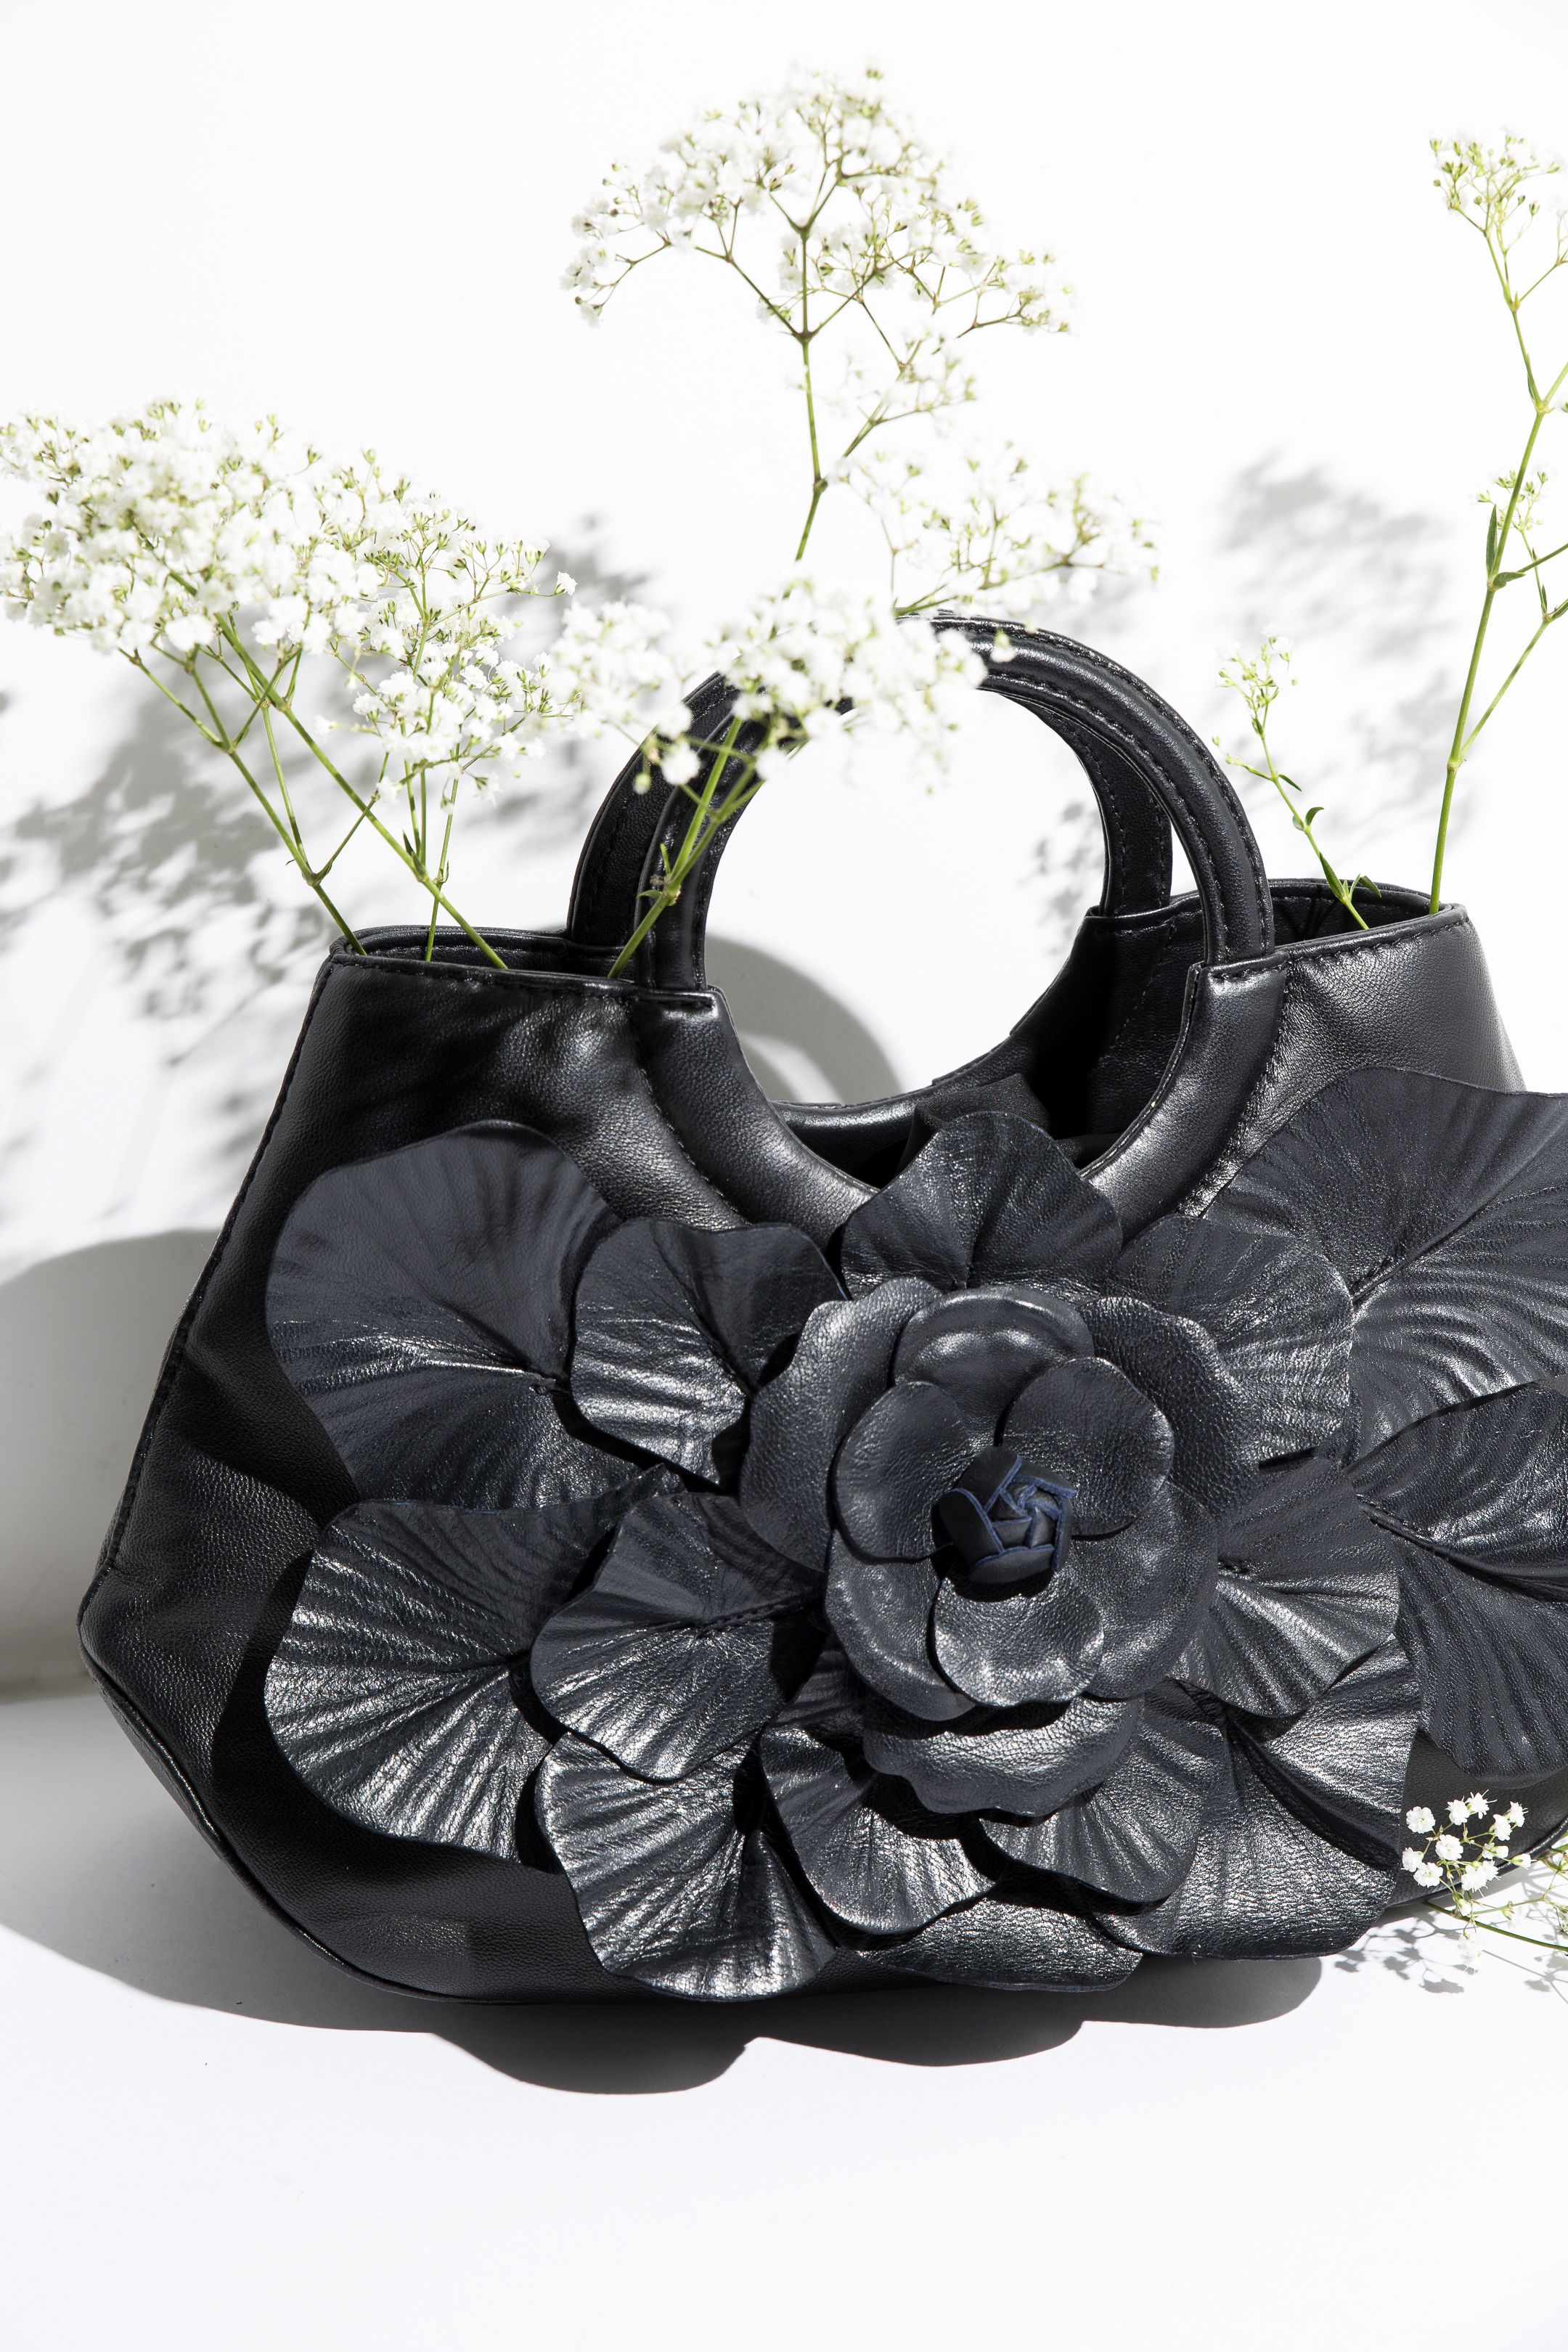 13 Best Handbags Images On Pinterest In 2018 Anne Fontaine Luxury And Couture Bags